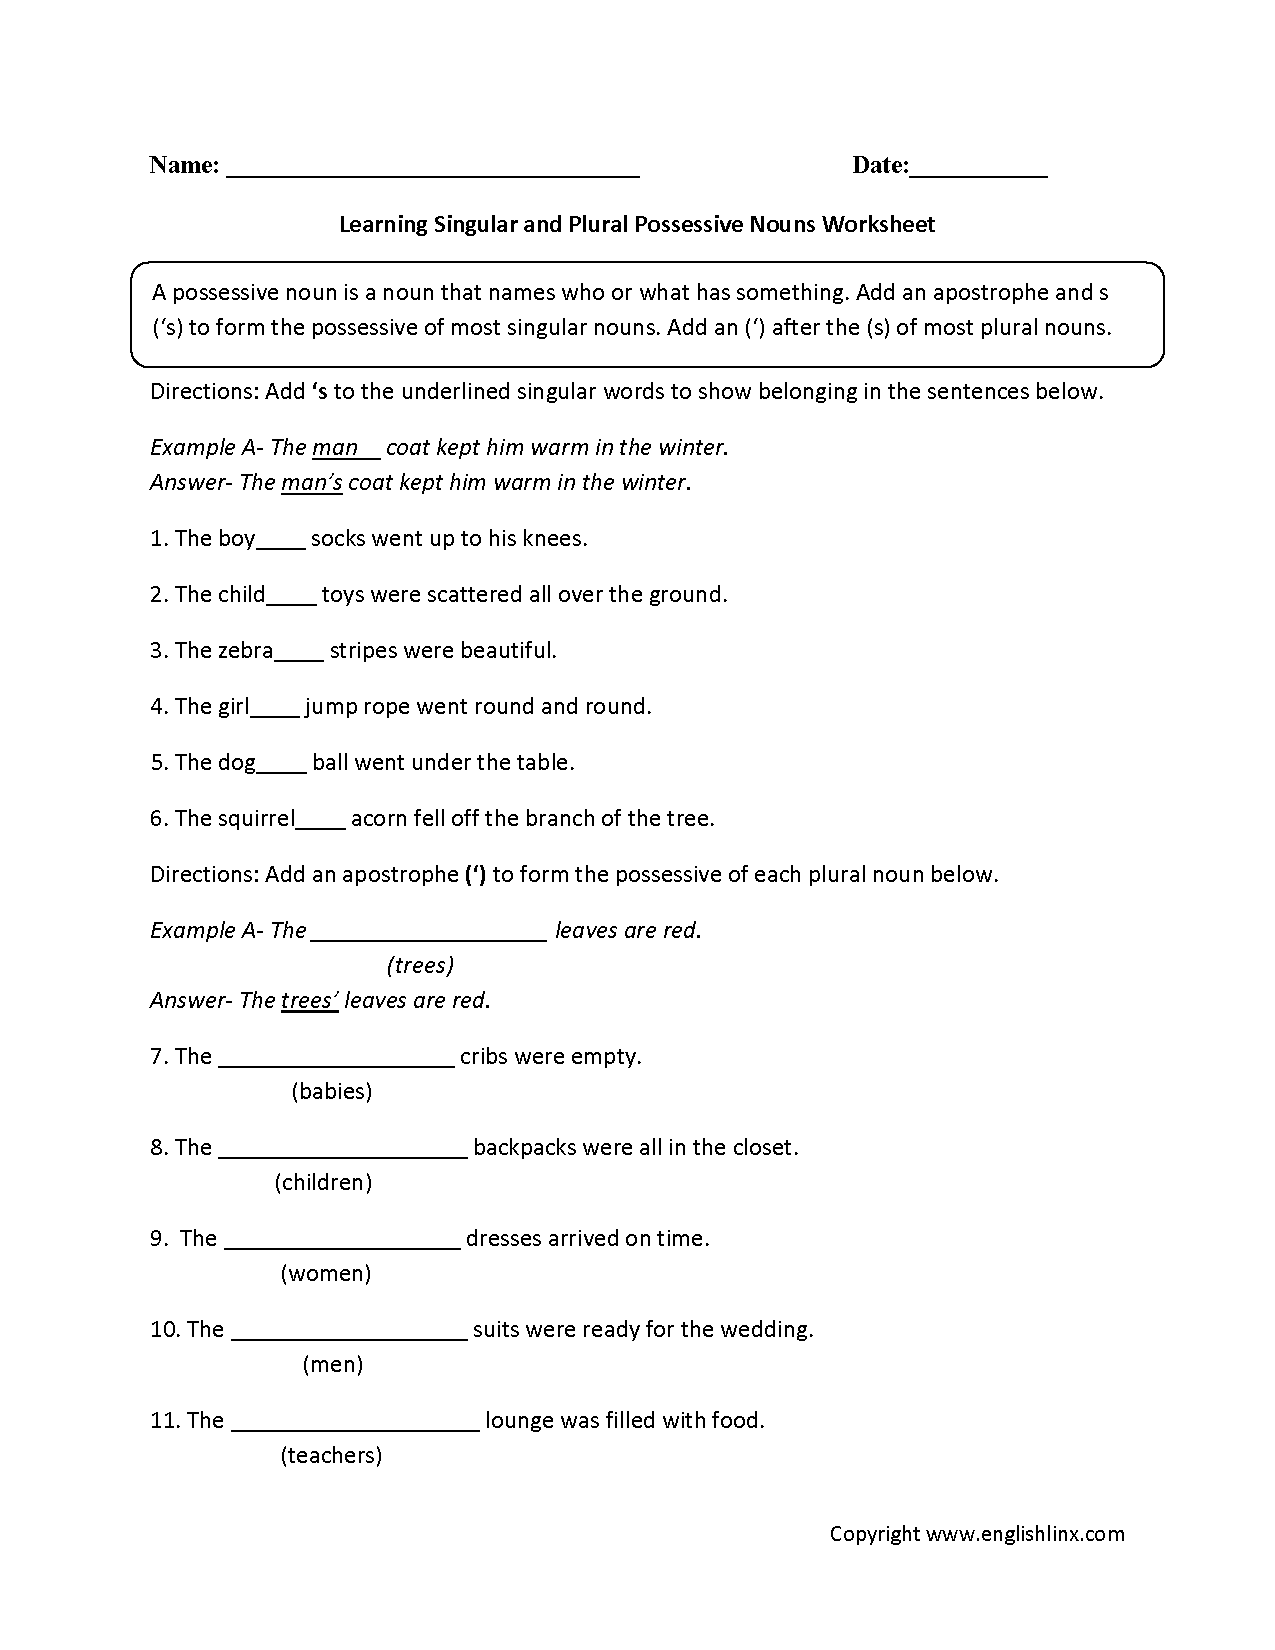 Plural vs Possessive Worksheet - The Teachers'- Library